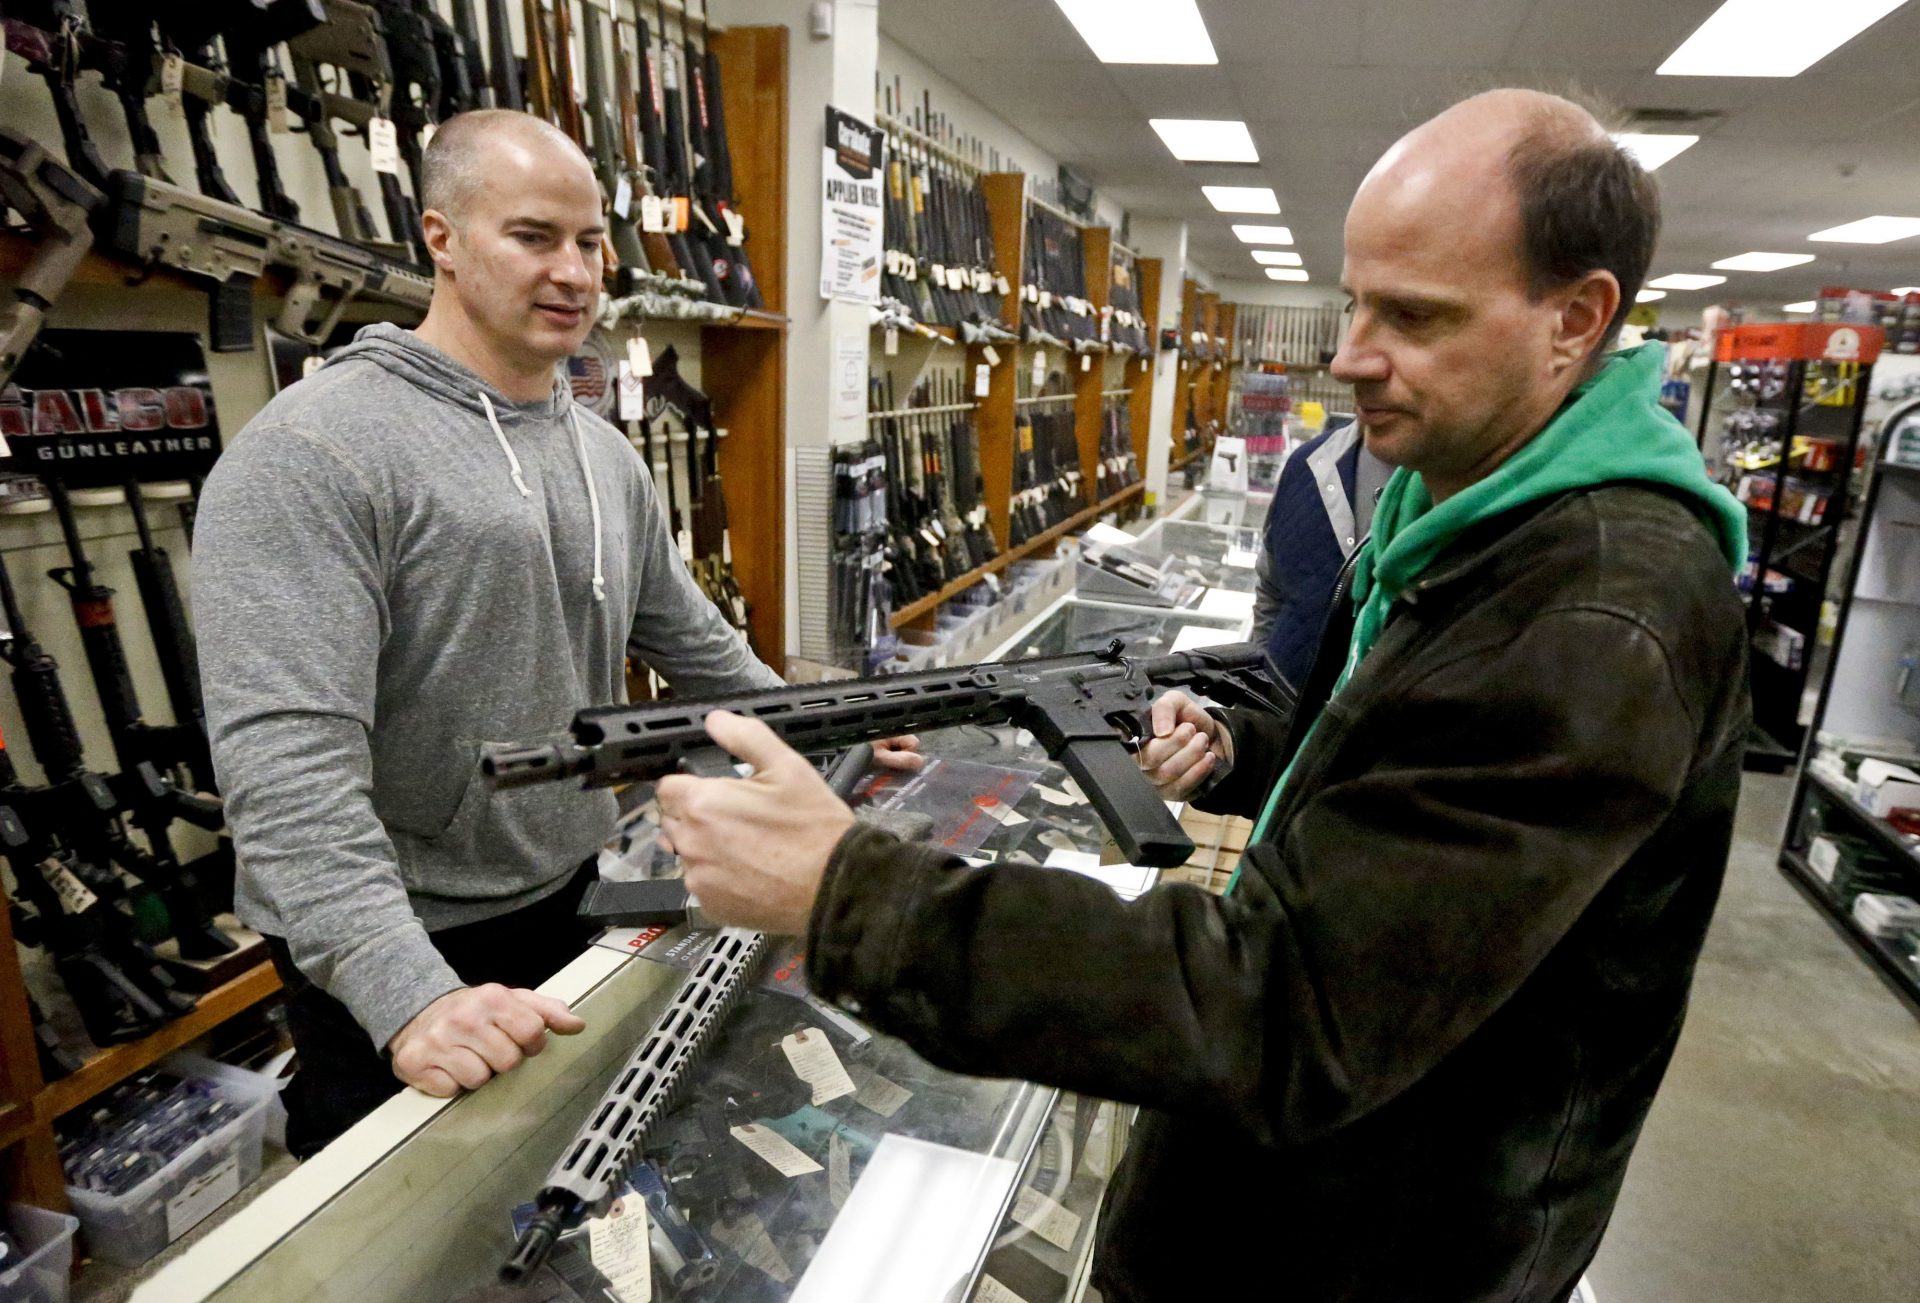 Wes Morosky, owner of Duke's Sport Shop. left, helps Ron Detka as he shops for a rifle on Friday, March 2, 2018, at his store in New Castle. Morosky said business has gone up recently, but that's thanks to the annual infusion of tax refund checks. Sales of firearms slowed dramatically after the election of President Donald Trump in 2016 allayed fears of a Democratic crackdown on gun owners. That trend continues, even with talk of gun control in Congress following the massacre of 17 people at a Florida high school last month.